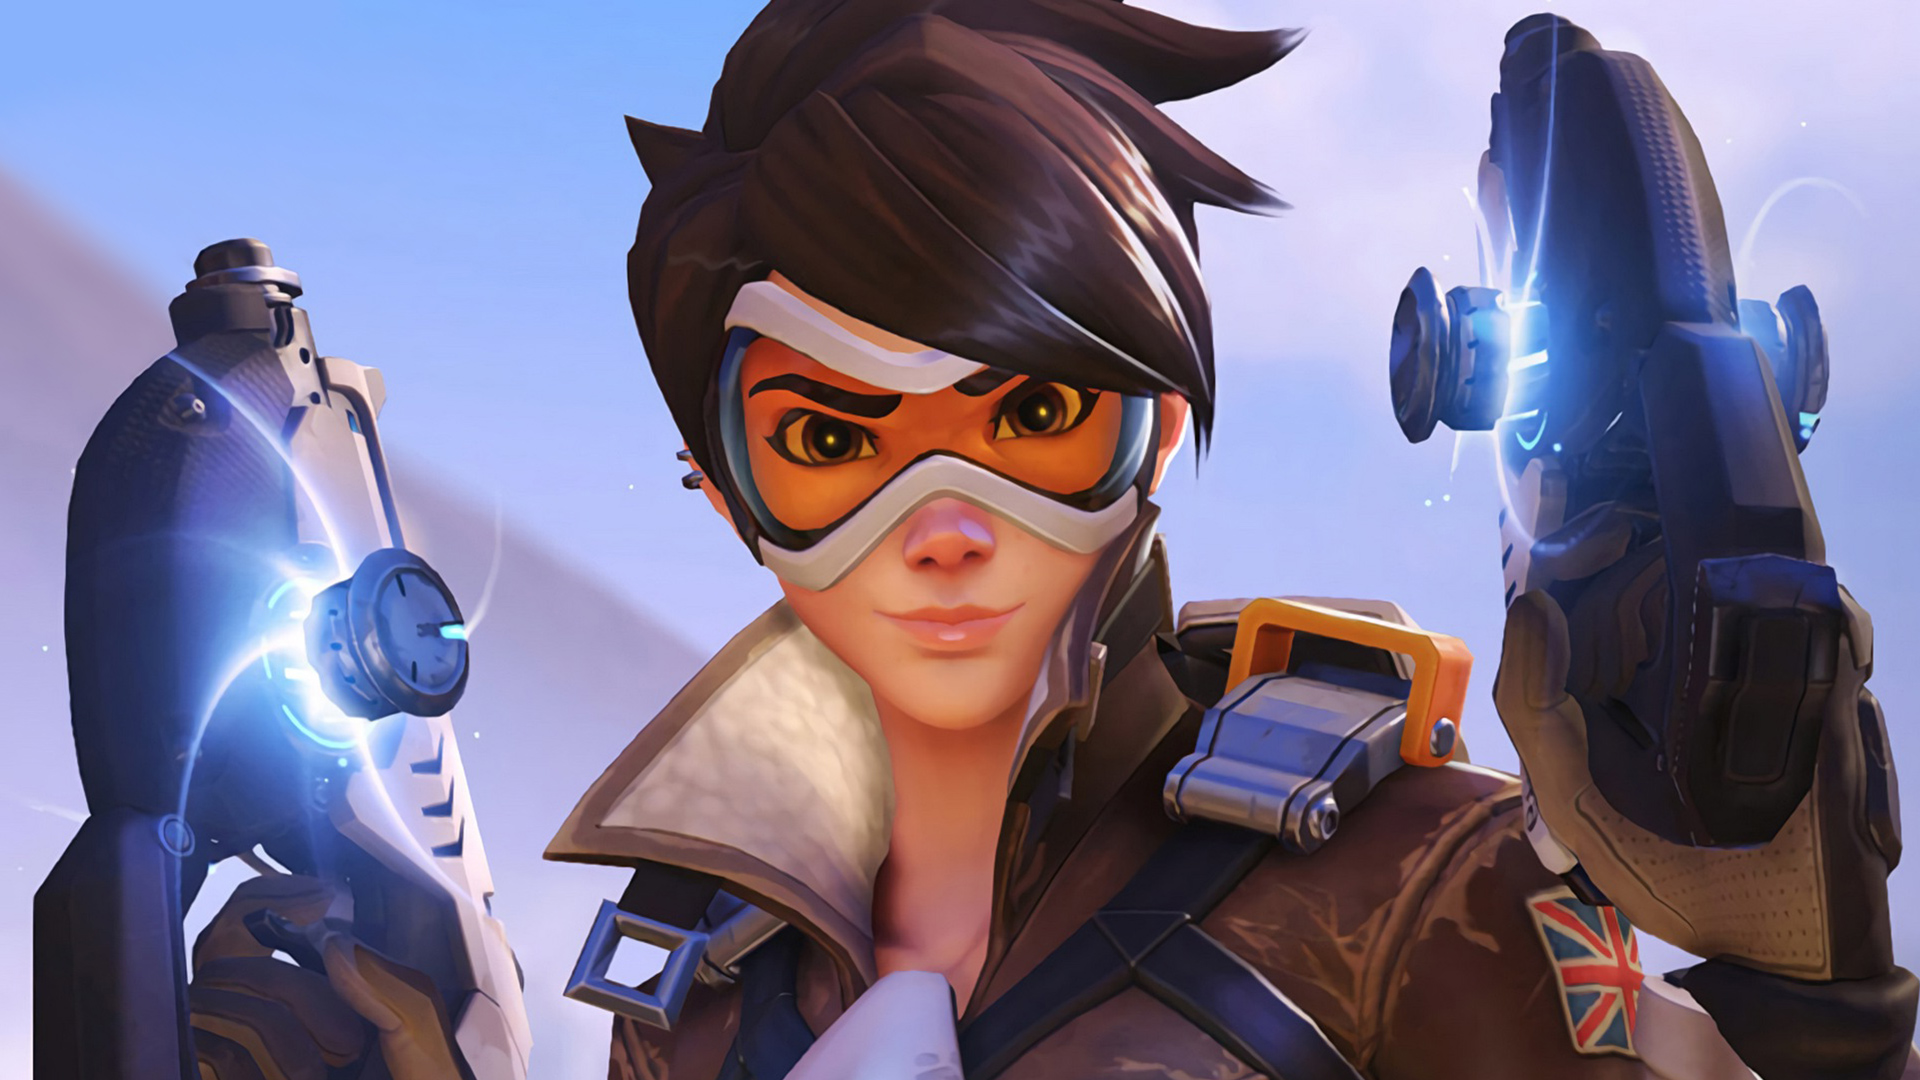 Tracer in Overwatch